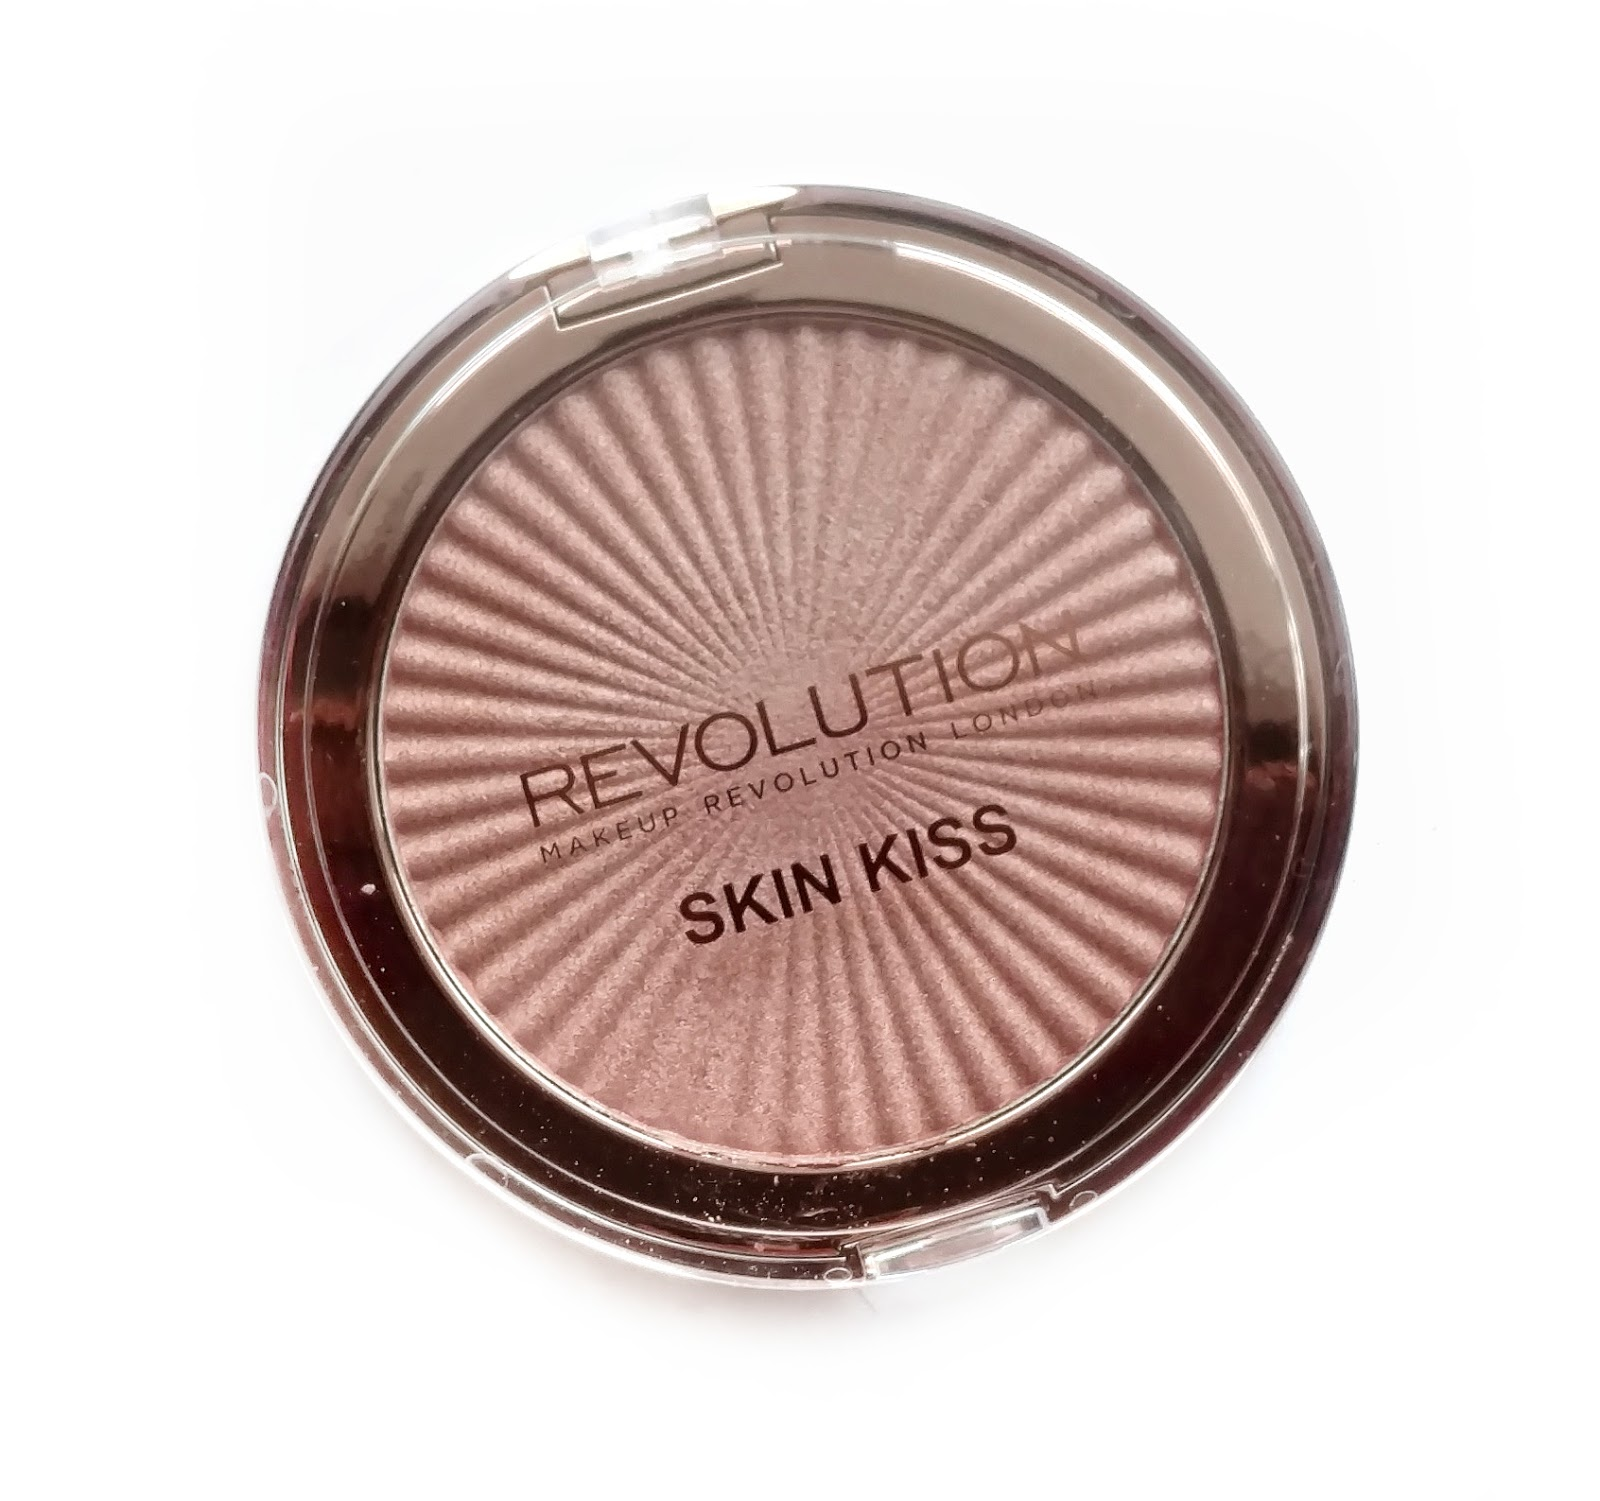 makeup revolution skin kiss highlighter peach kiss